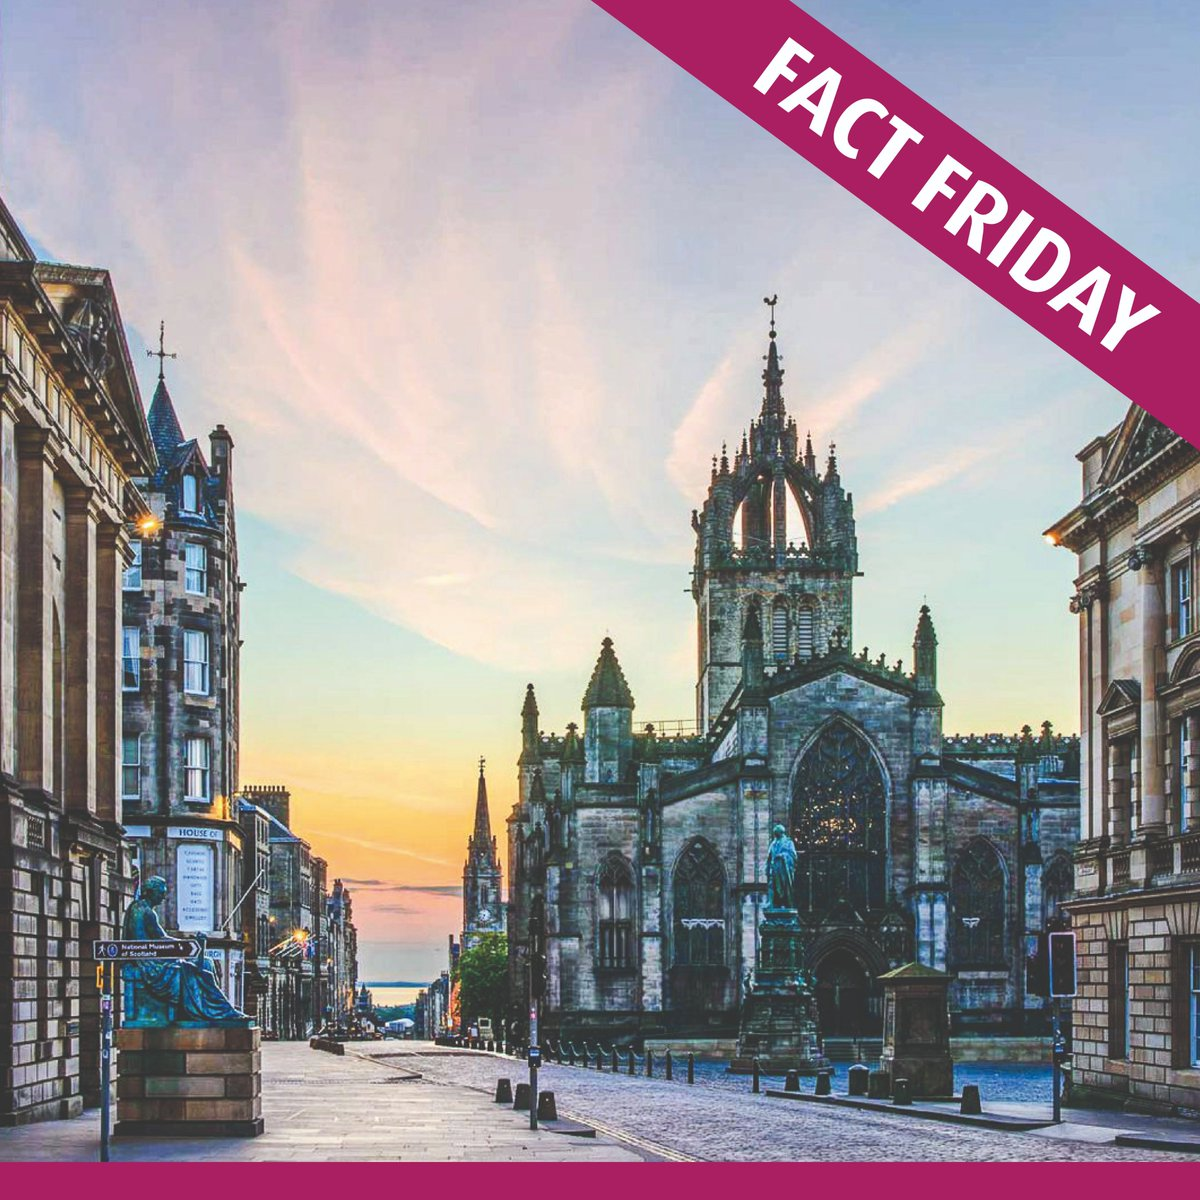 Here is this weeks @openevenings #FactFriday:  Did you know @EdinburghUni  is home to the UK's oldest student newspaper?  It was started in 1887 by Robert Louis Stevenson, author of Treasure Island and The Strange Case of Jekyll and Hyde...<br>http://pic.twitter.com/othtKMbaWc